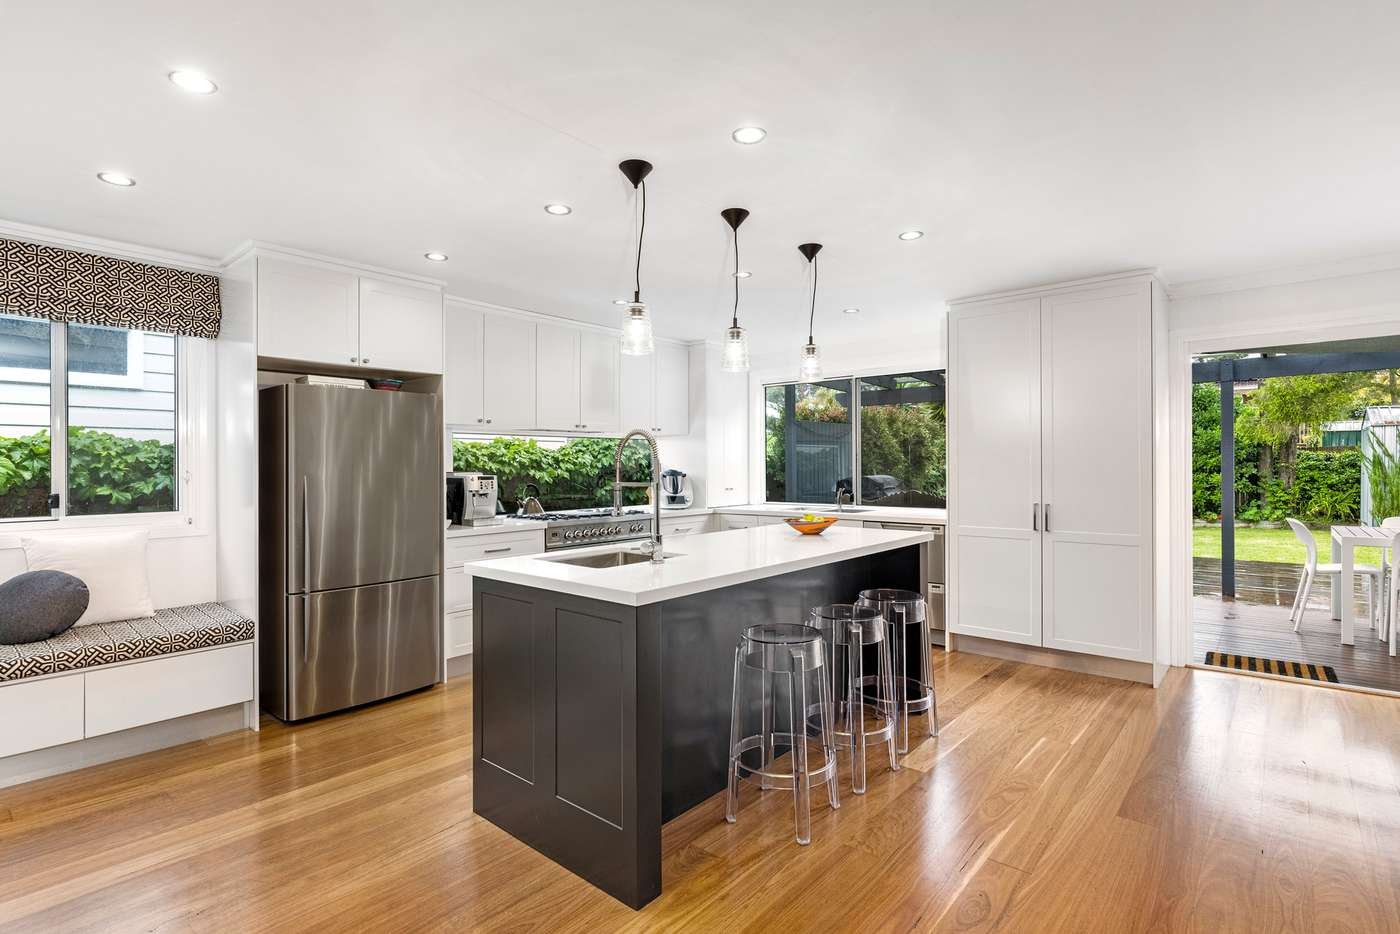 Main view of Homely house listing, 22 Johnson Street, Freshwater NSW 2096